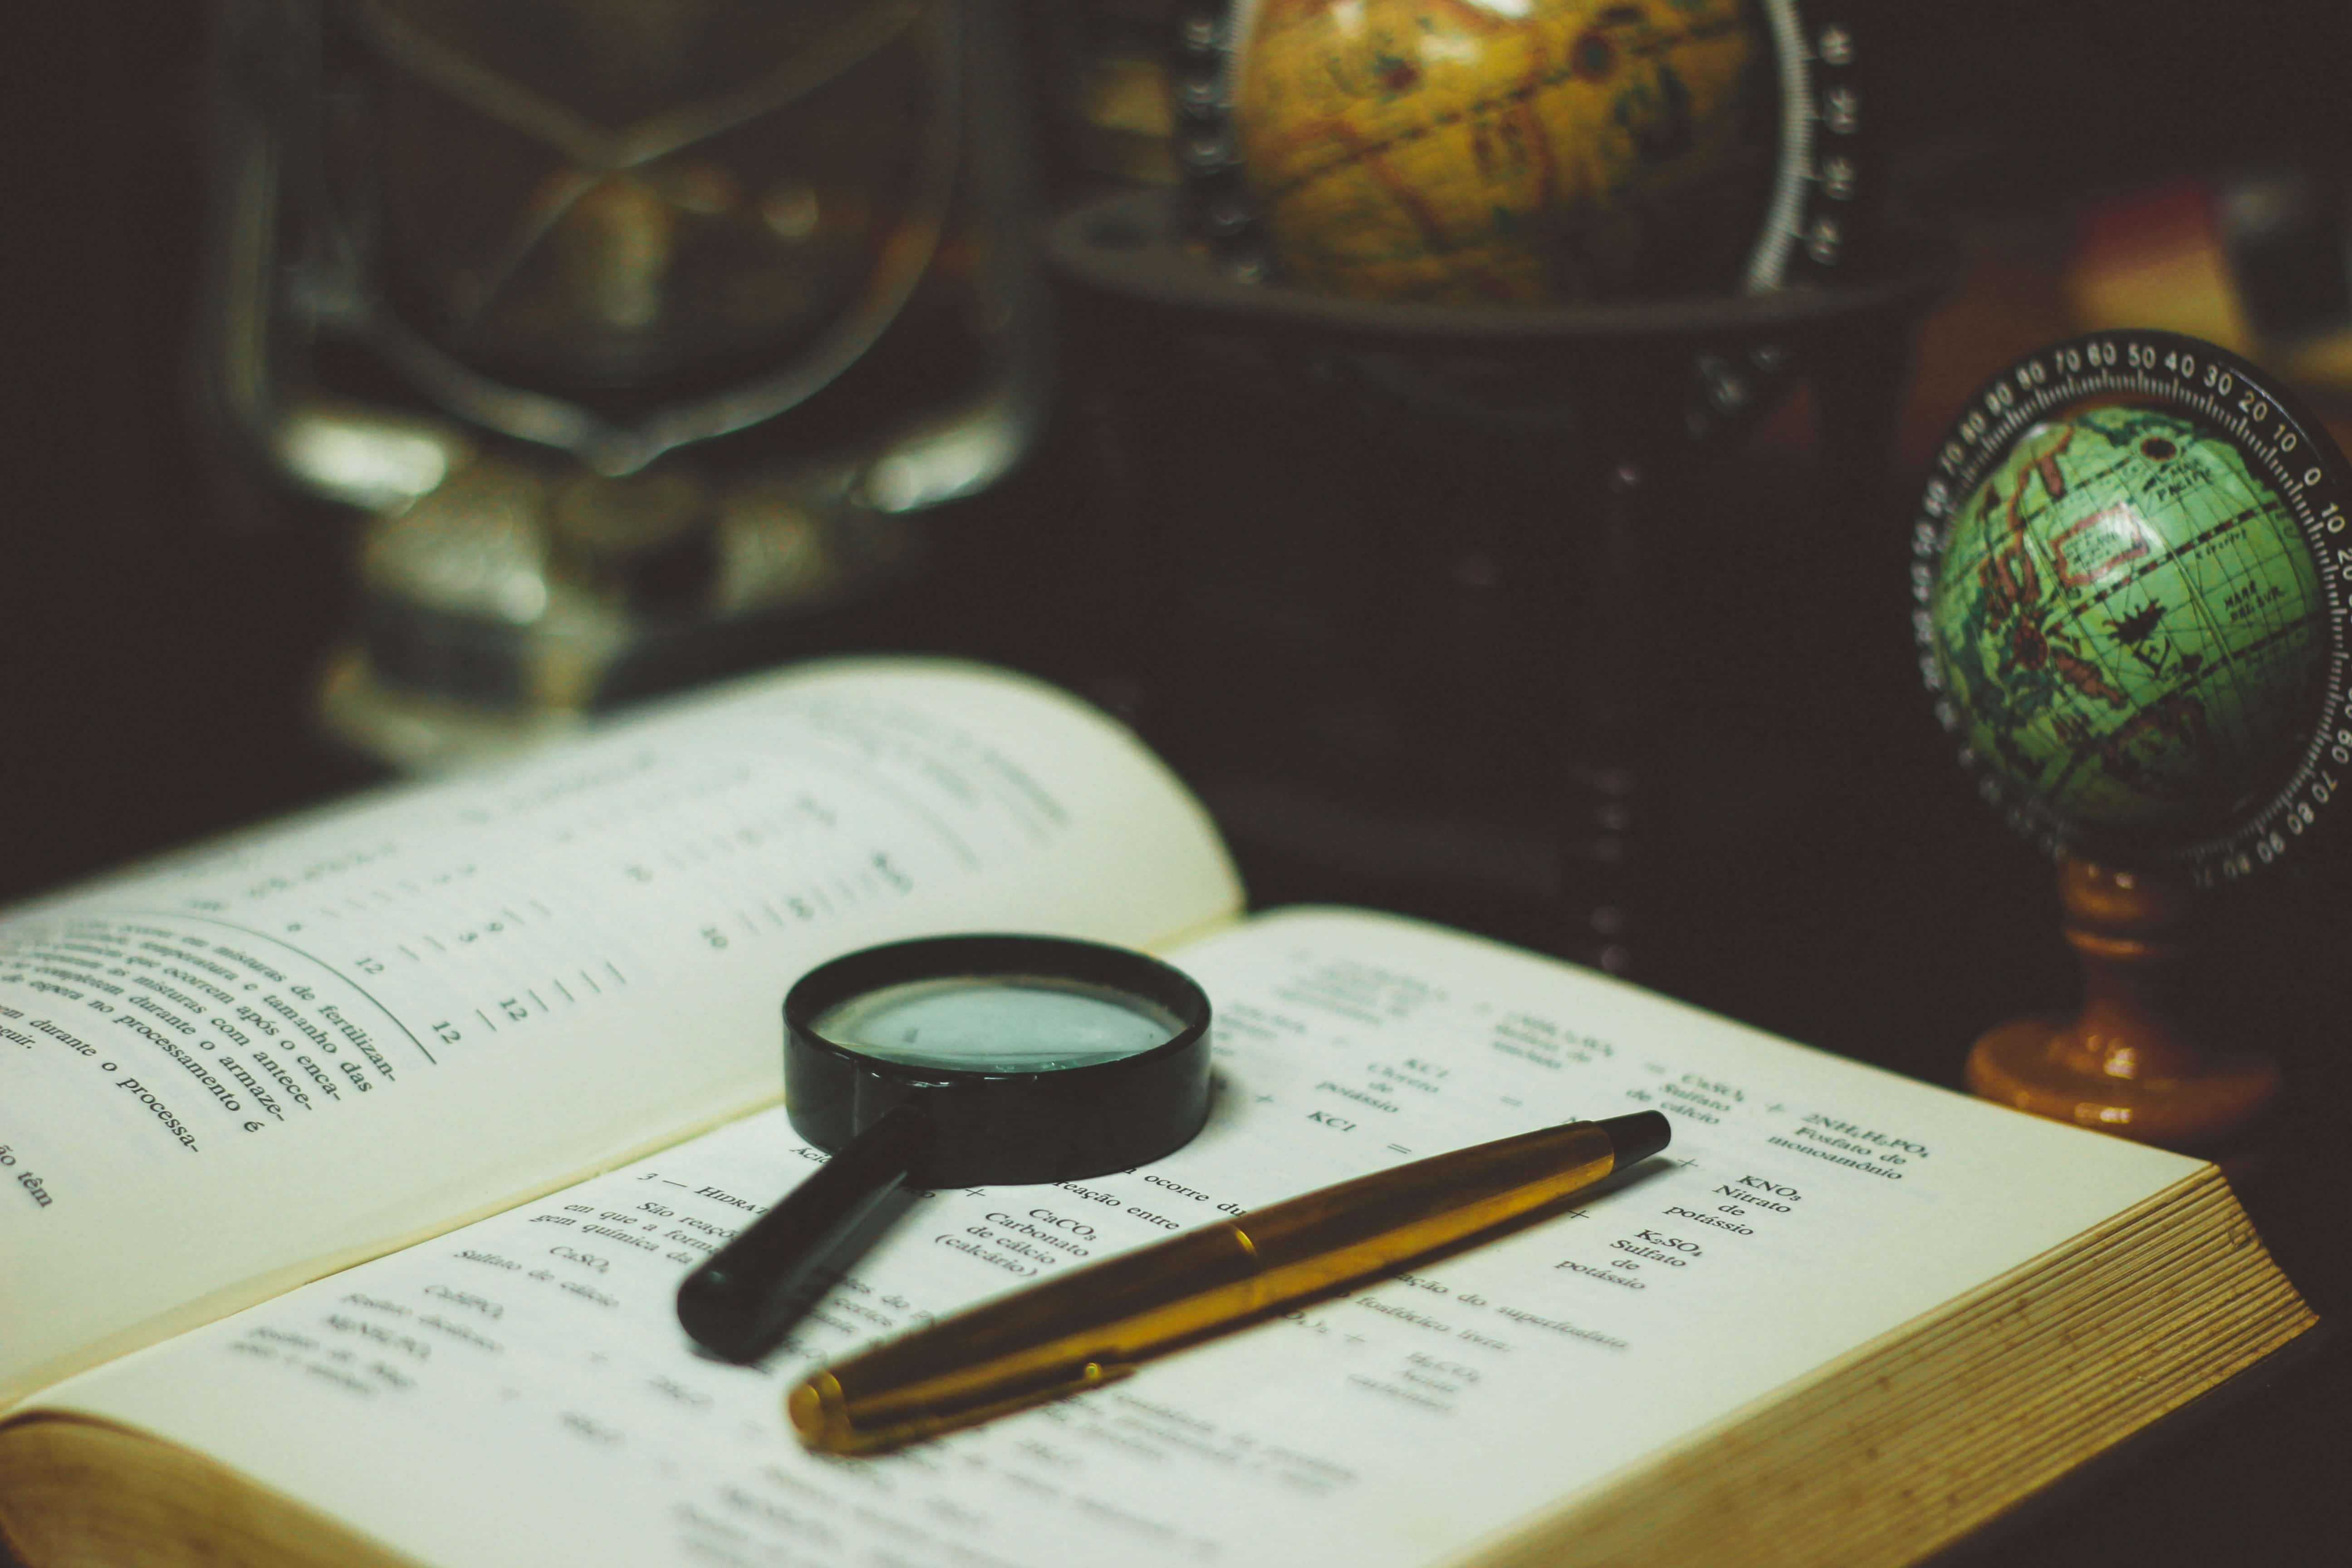 Magnifying glass and pen on book; image by João Silas, via Unsplash.com.